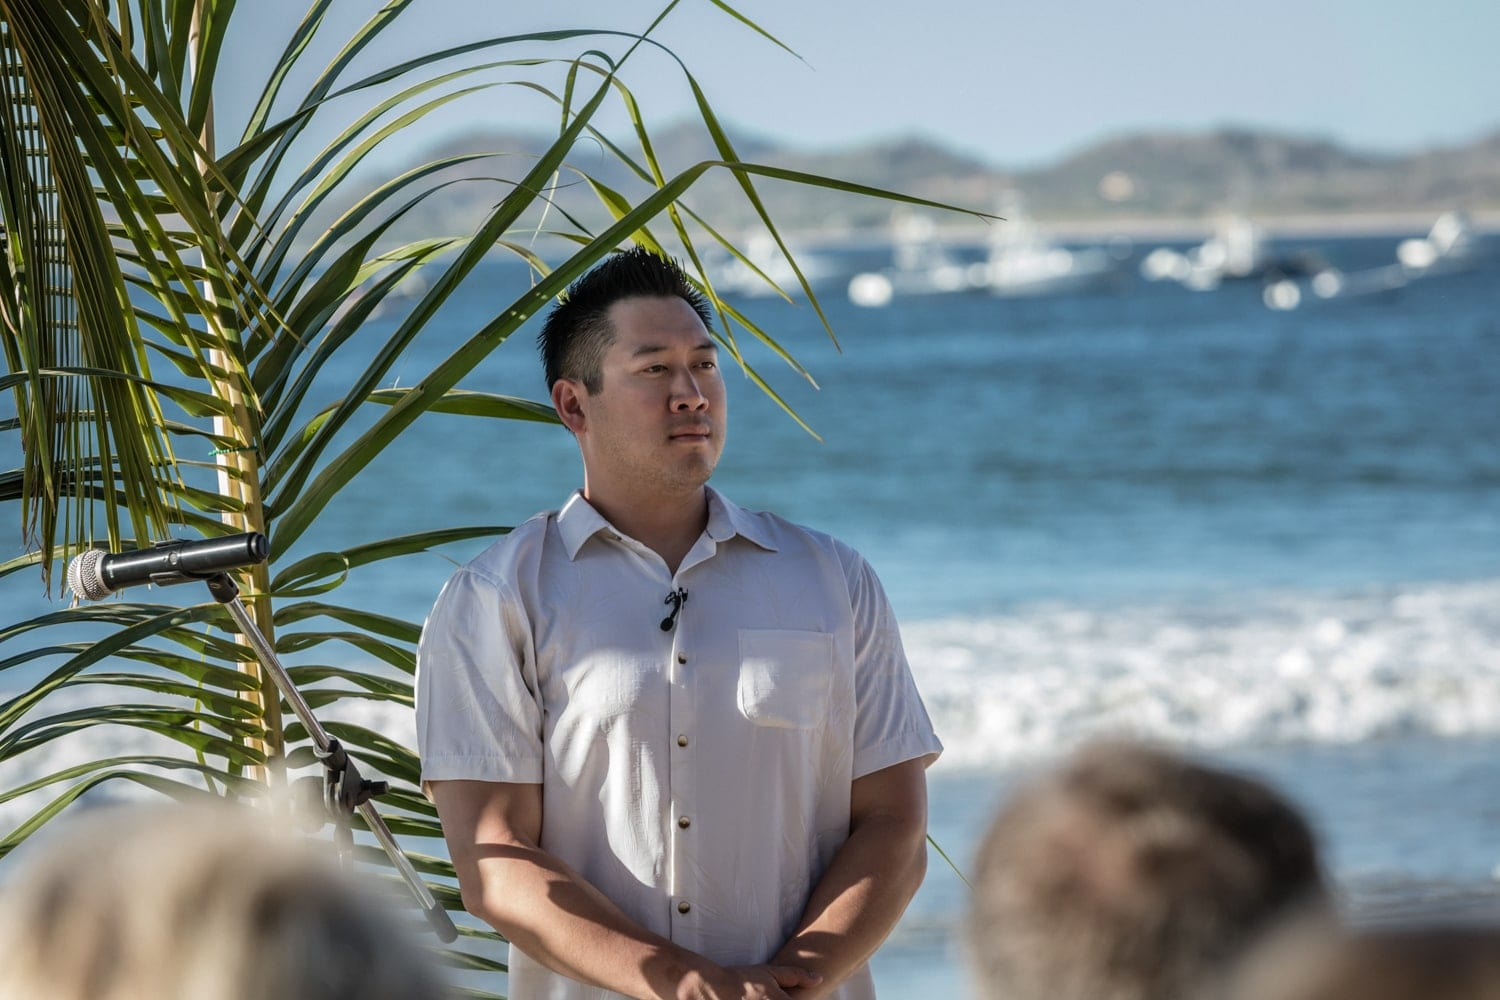 Groom waits at altar on beach in Tamarindo for bride to arrive.